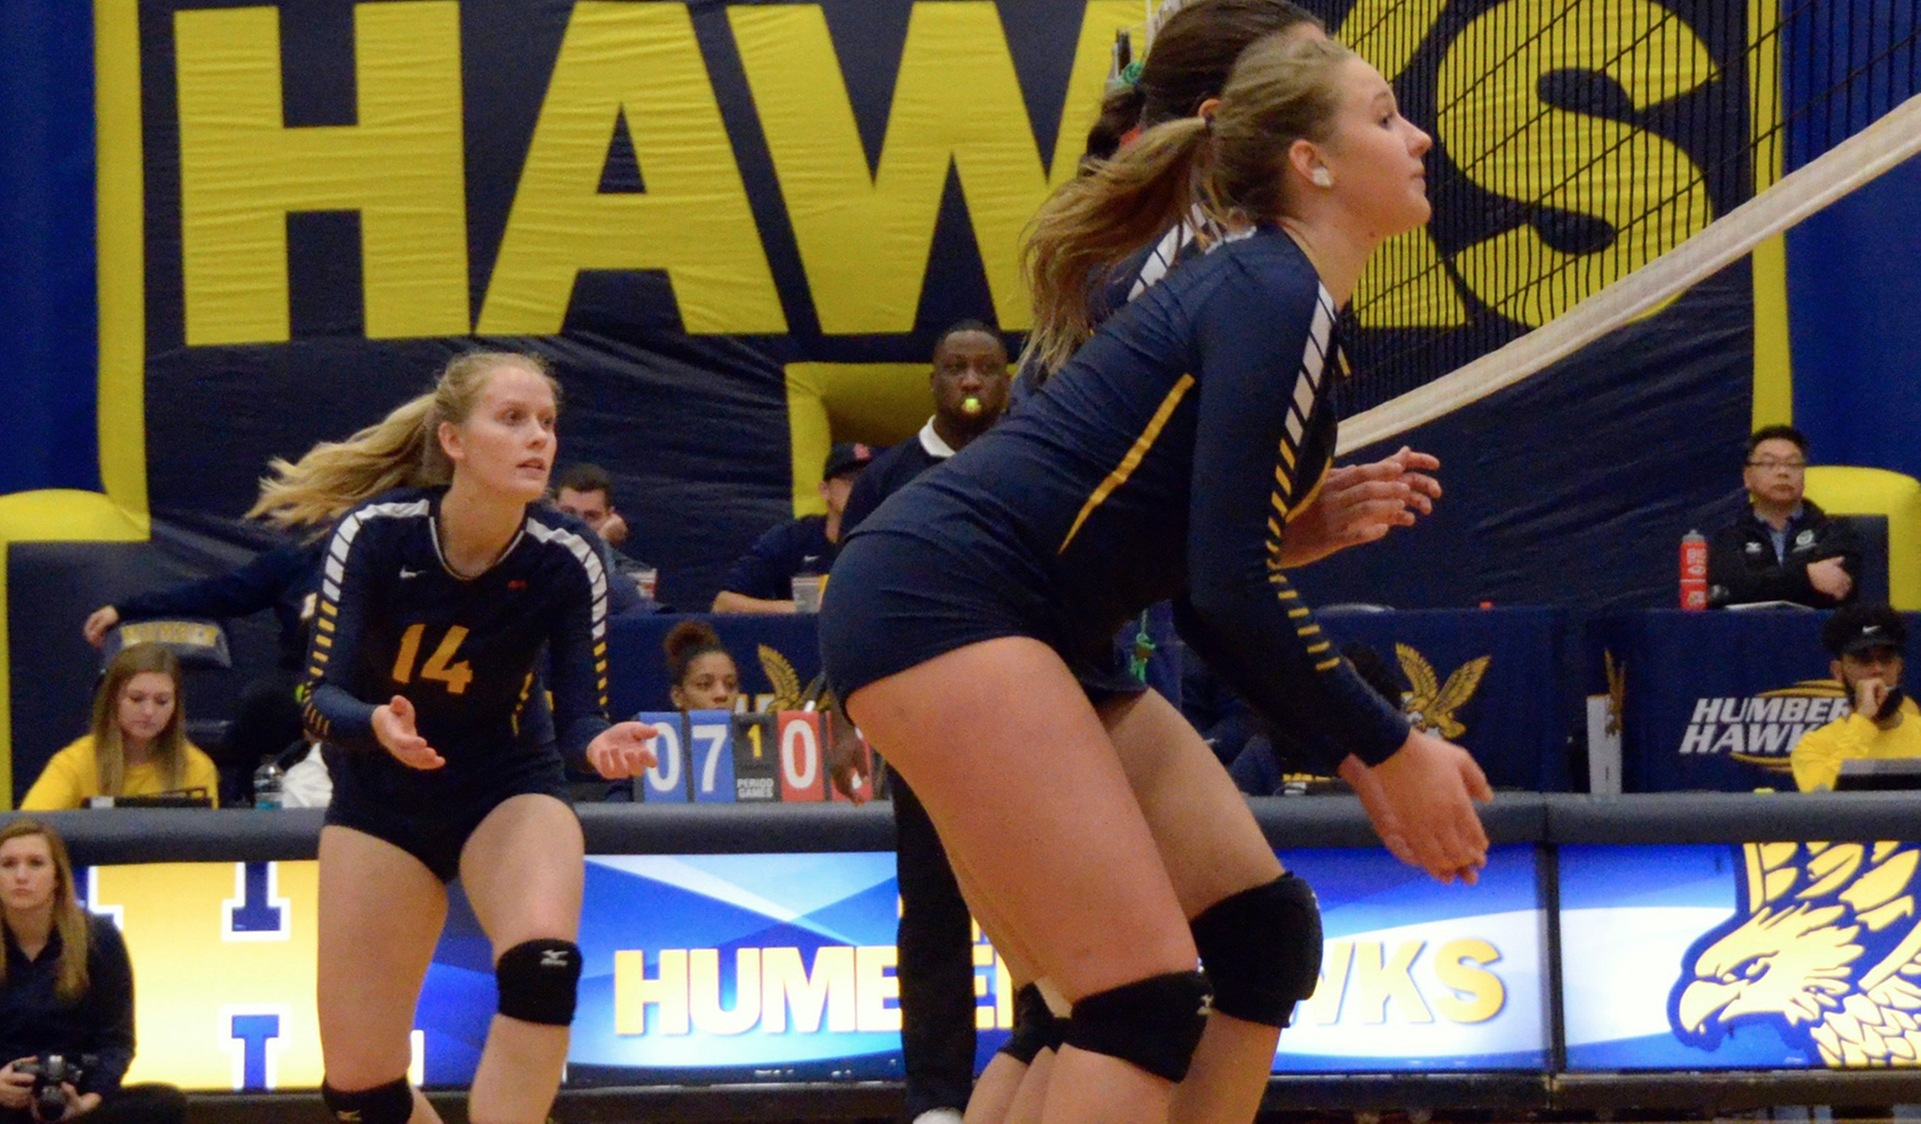 HAWKS LOOK TO CLOSE OUT EXHIBITION RUN ON THURSDAY WITH WIN AT HOME VS SENECA